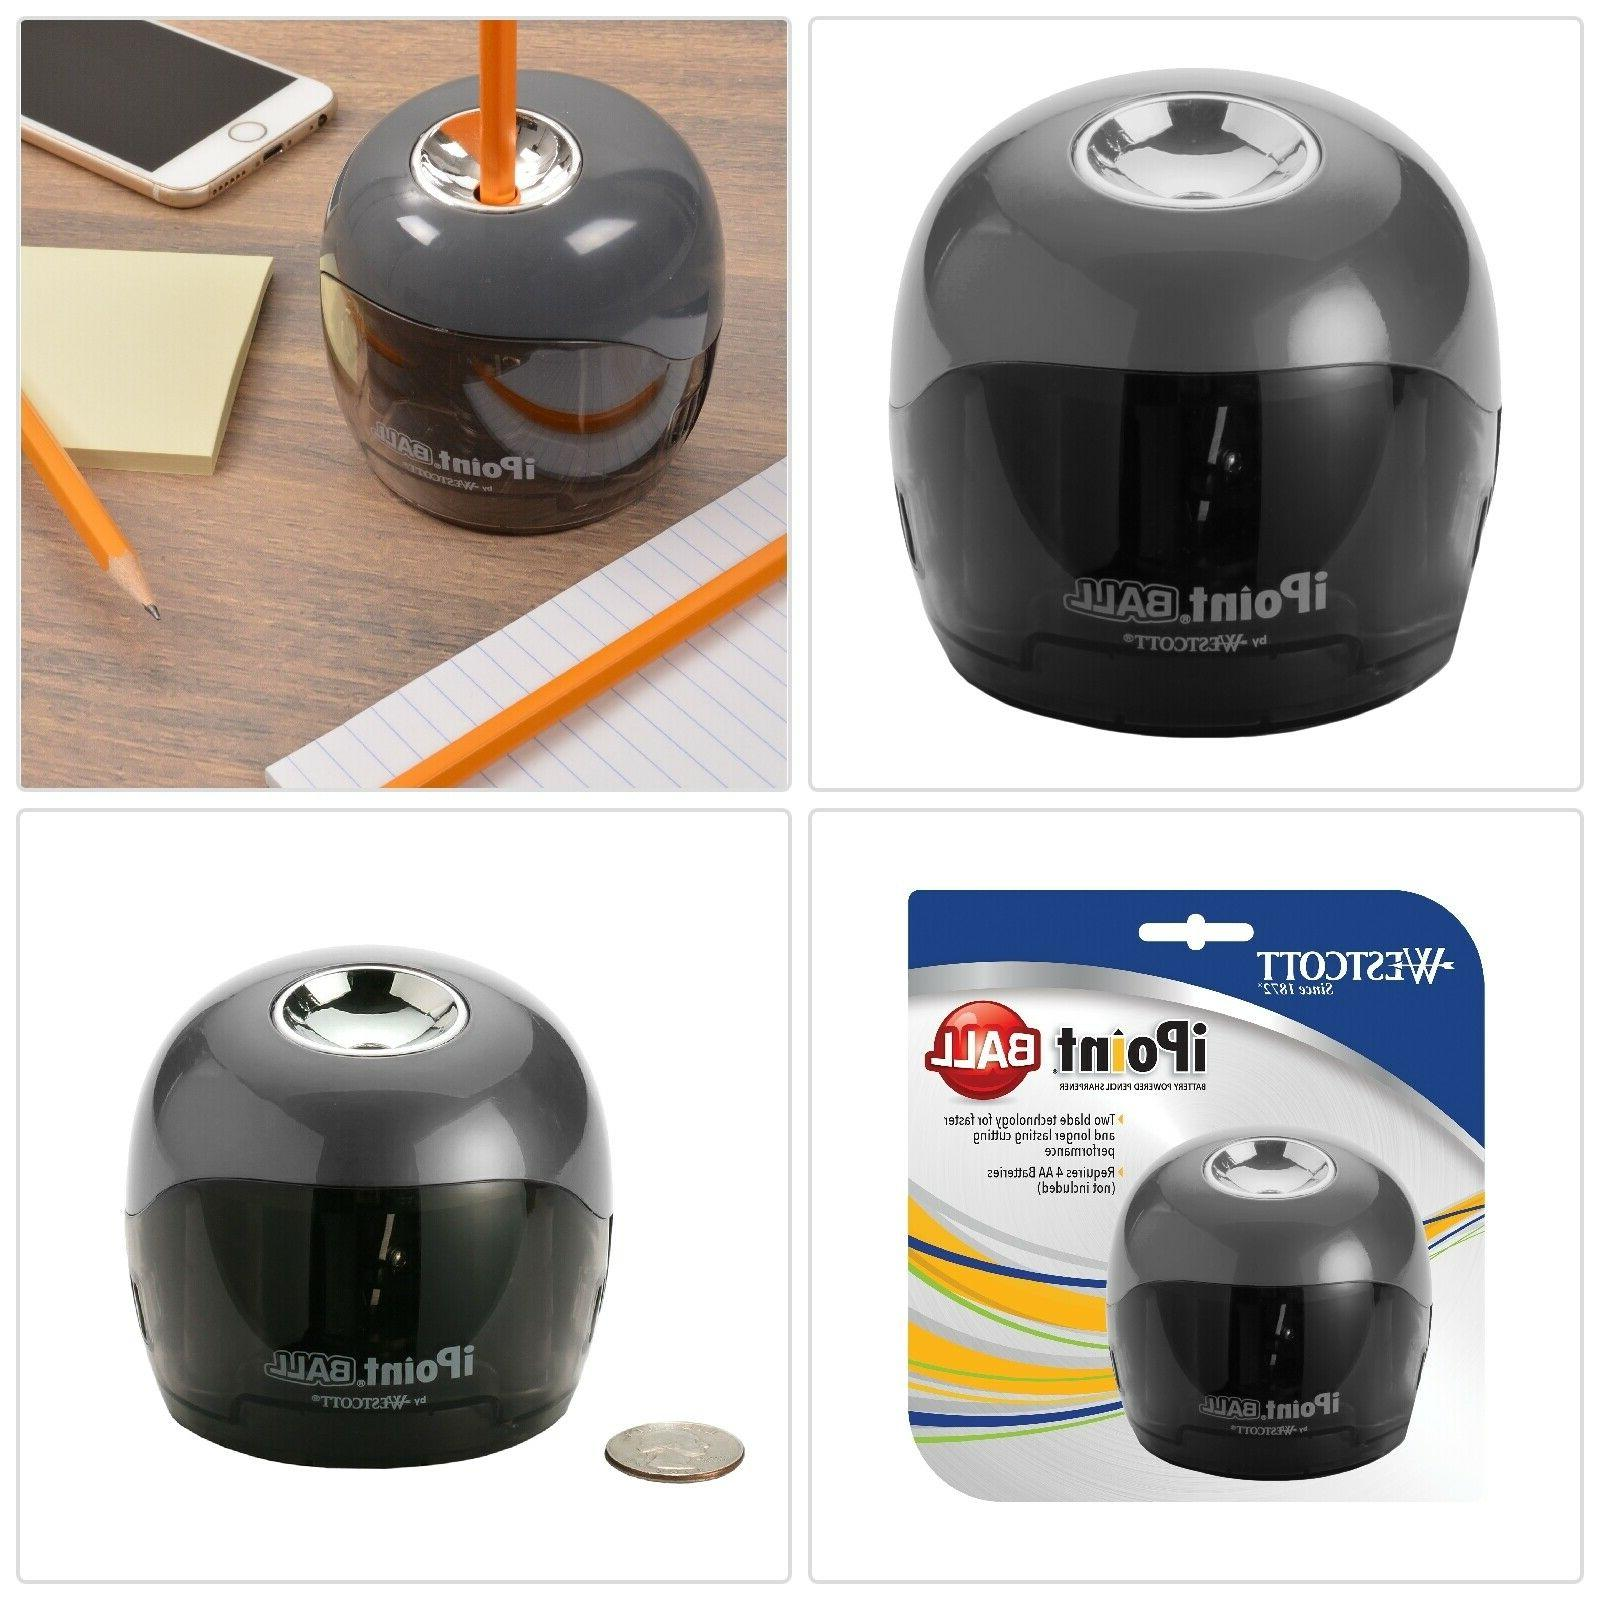 ipoint ball pencil sharpener durable compact battery